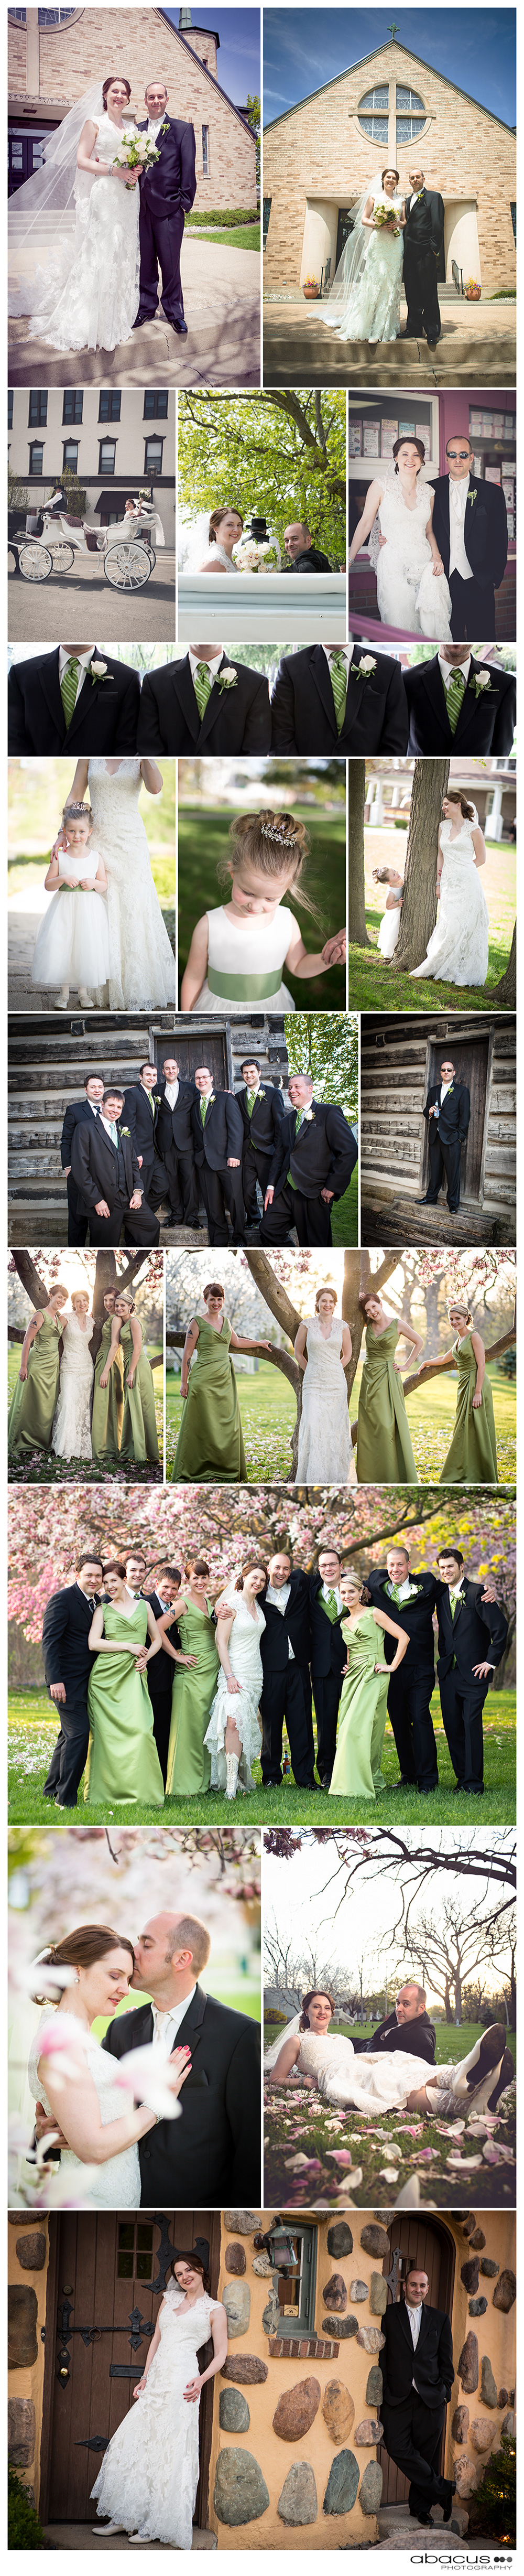 Central Oregon wedding photographer travels to Michigan to photograph an amazing Spring wedding.